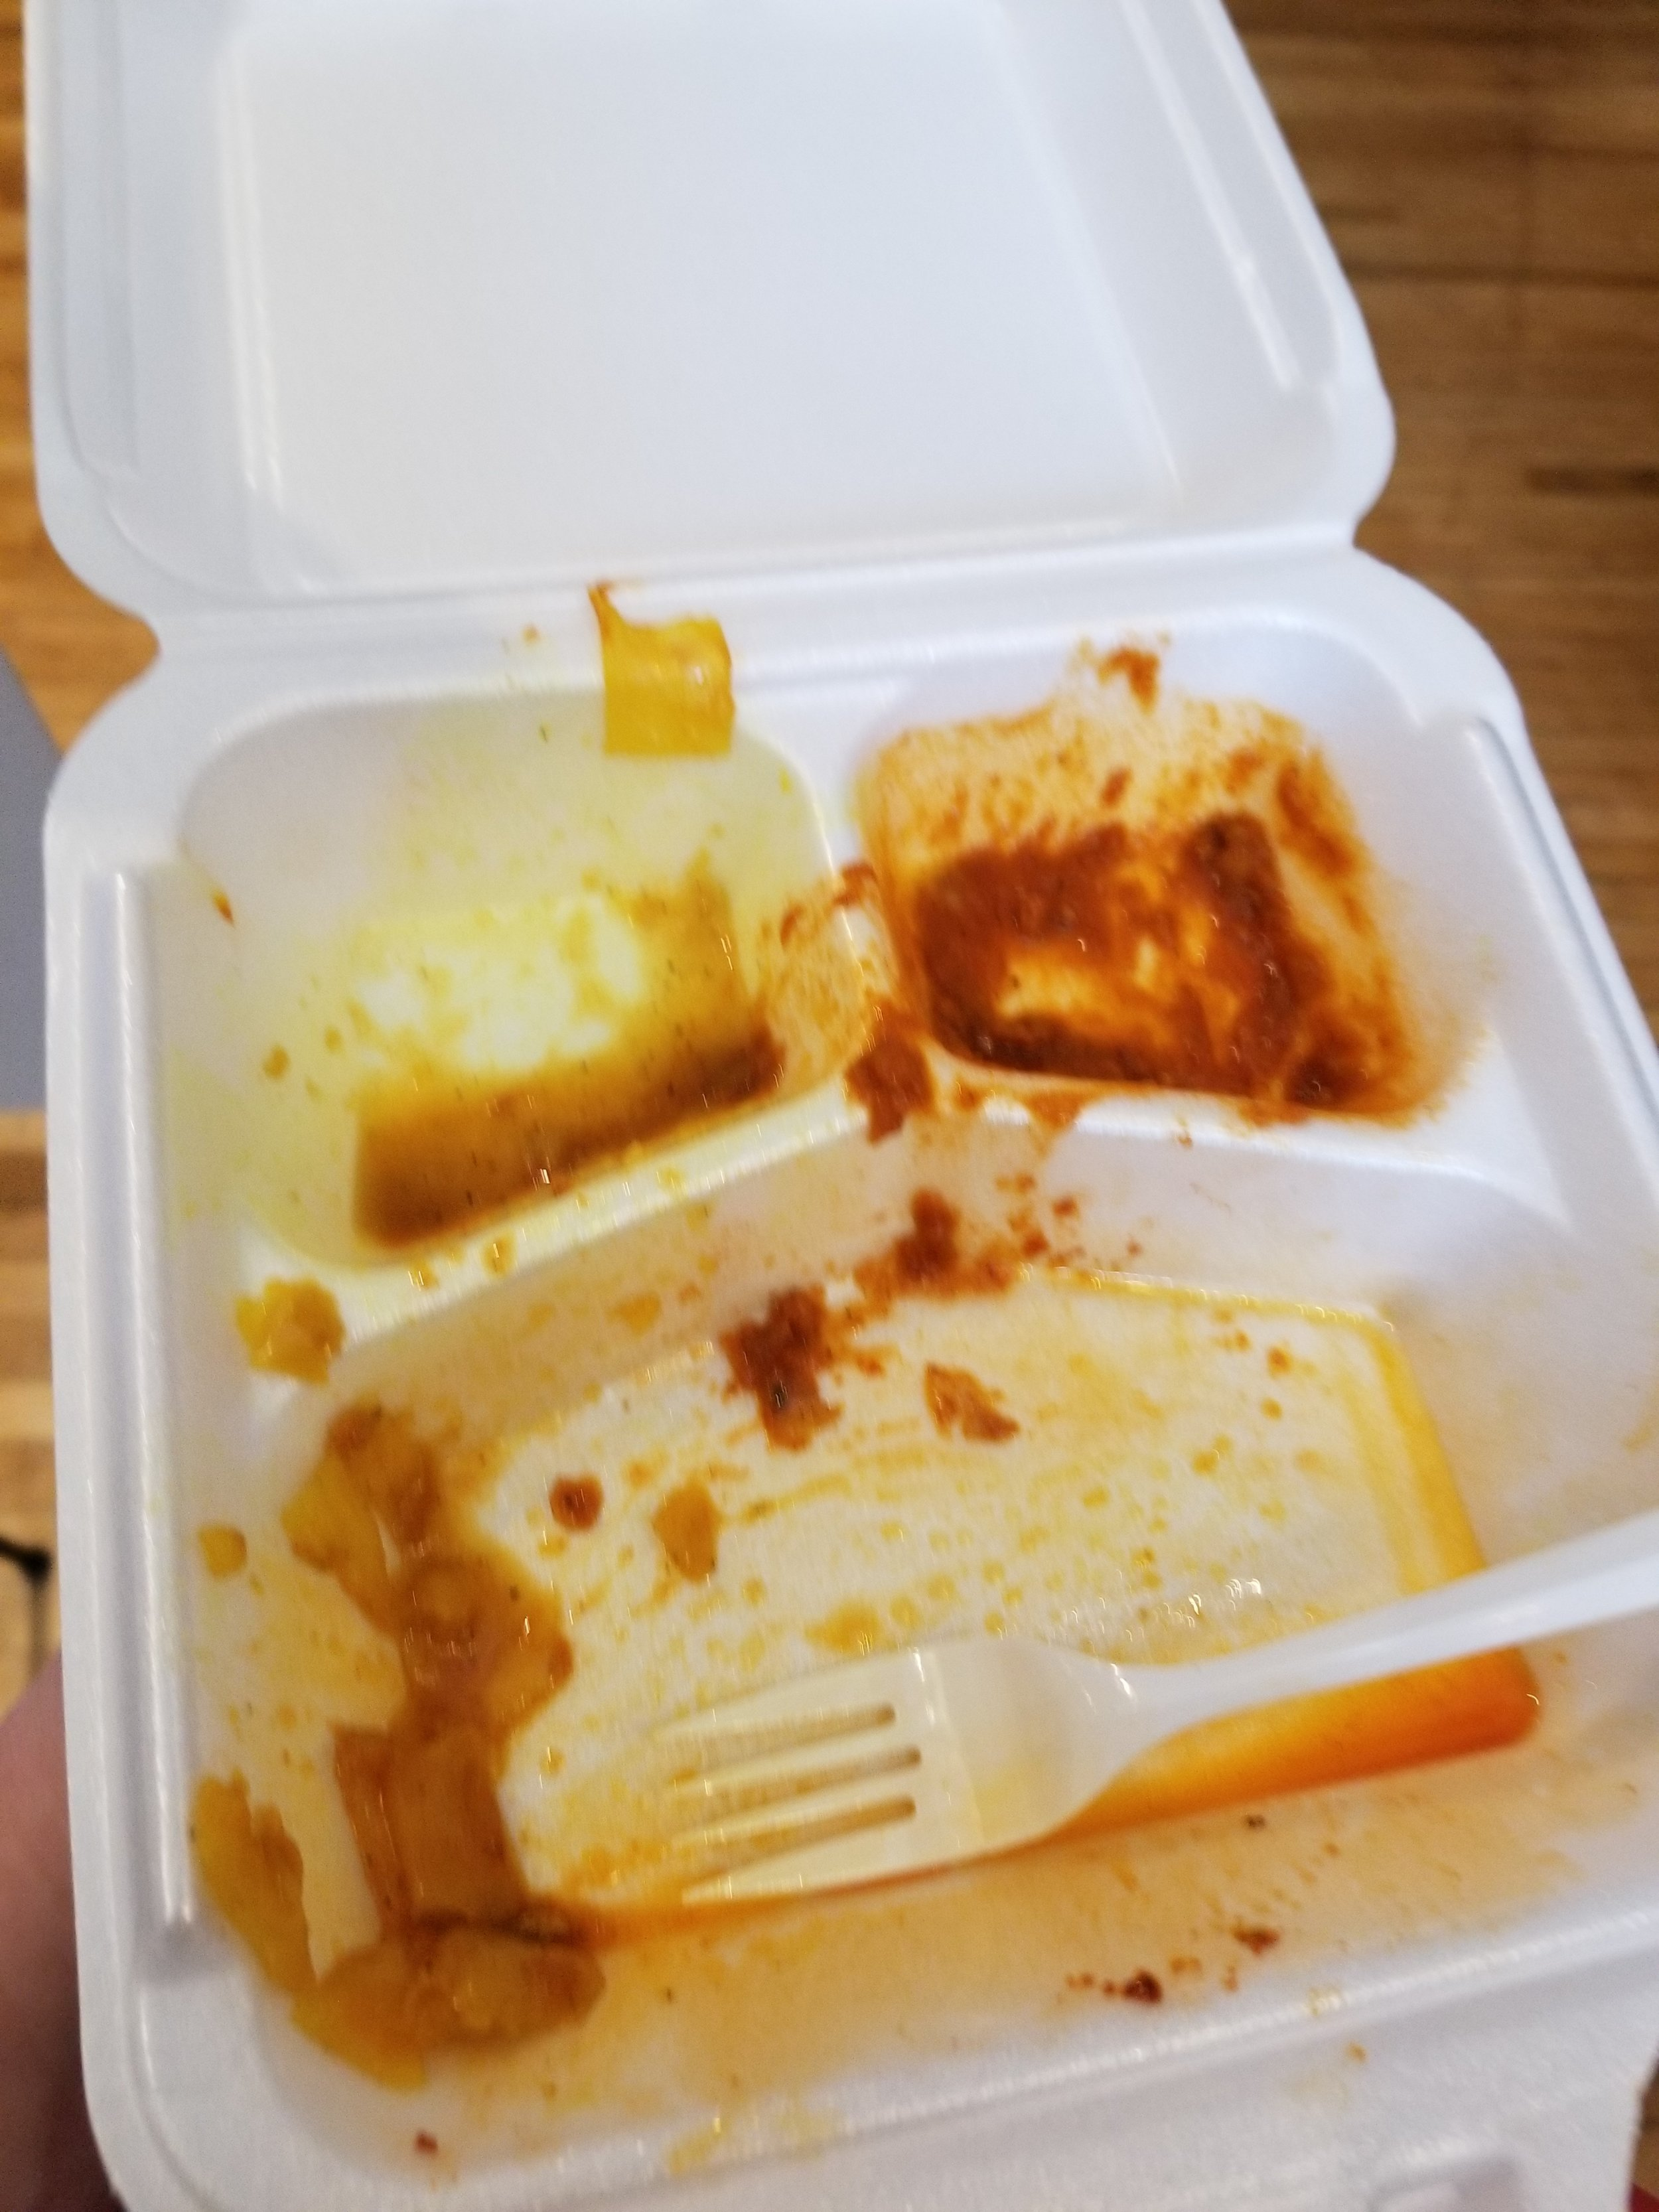 As you can see, I thoroughly enjoyed the dish…all of it.